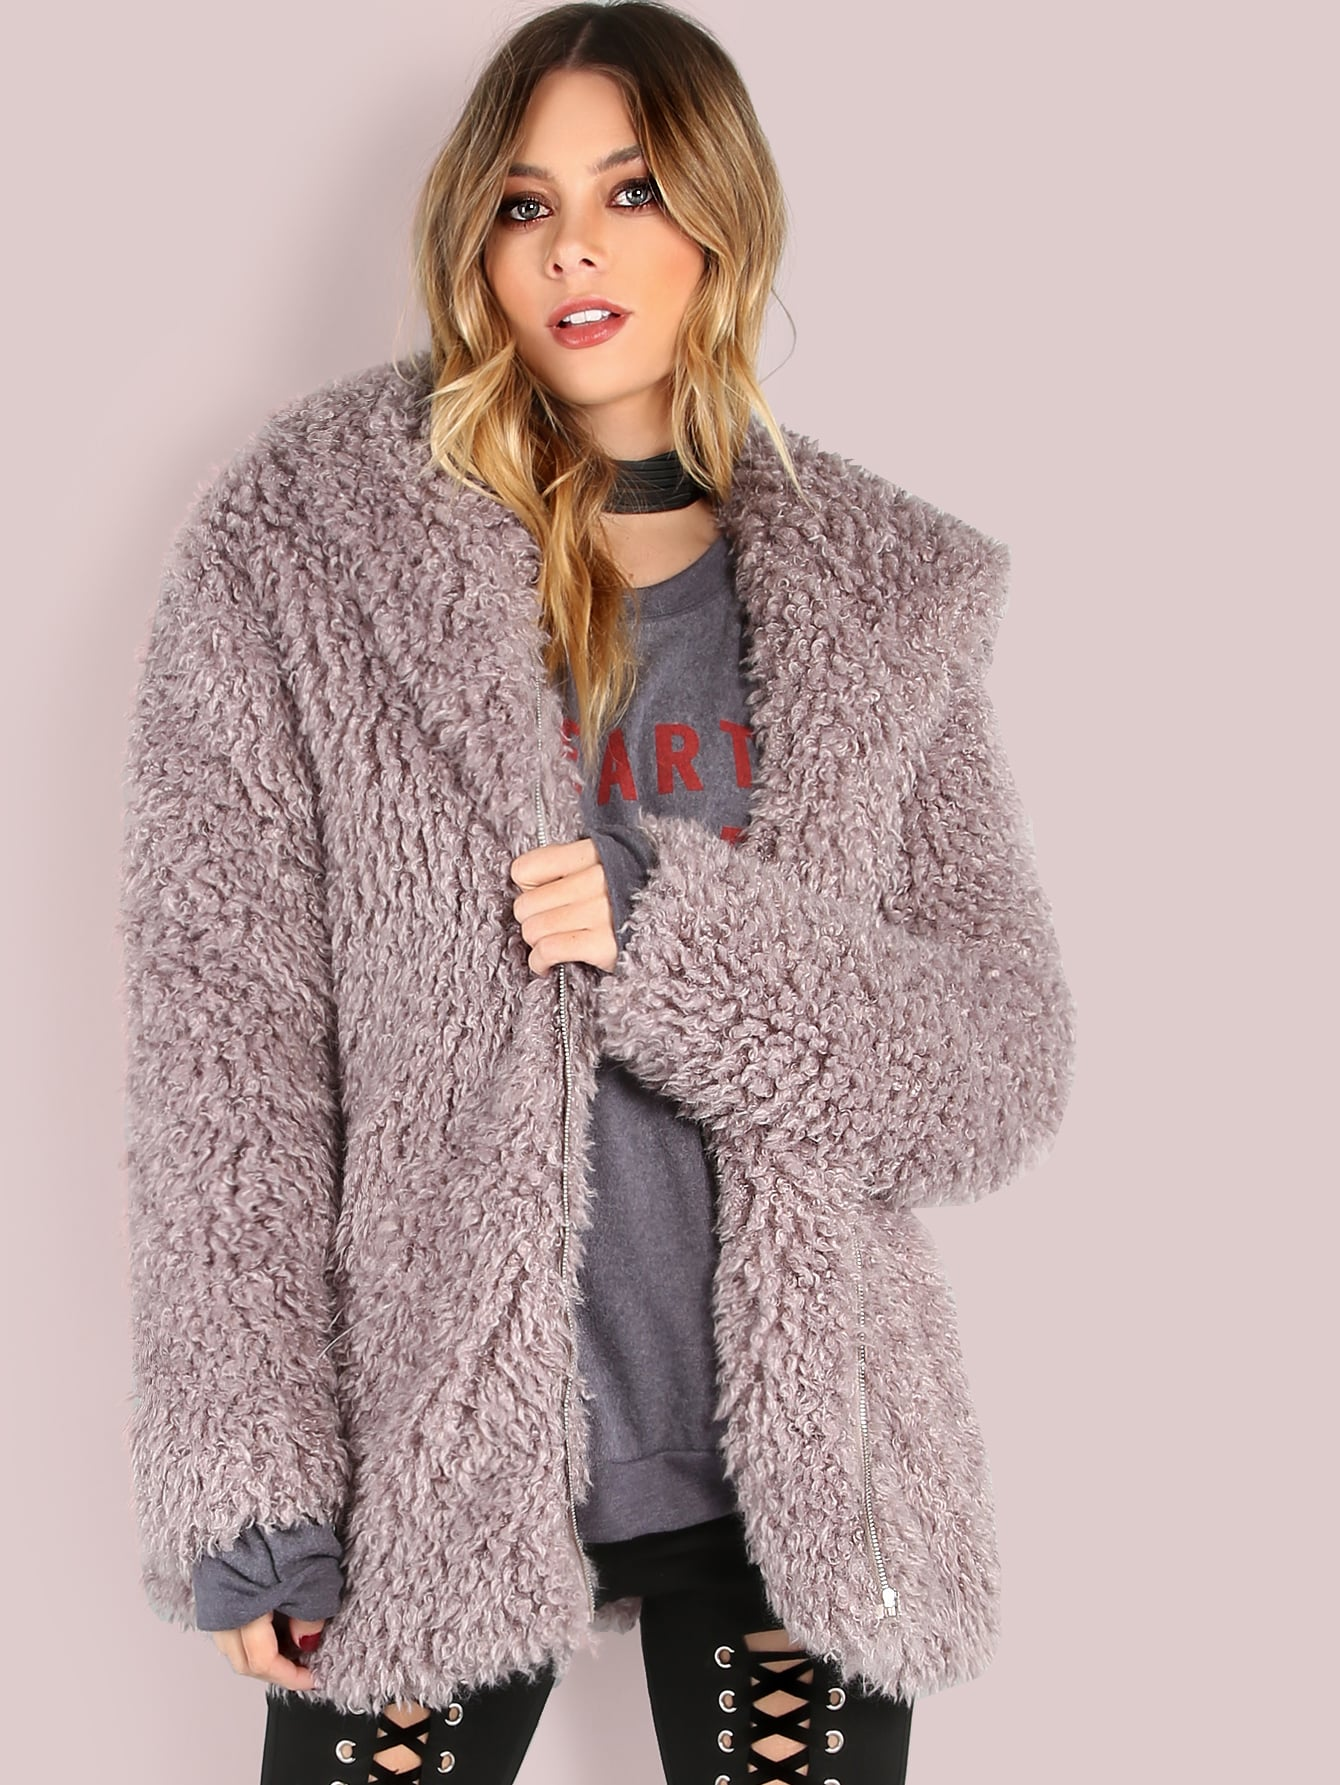 Coats Grey Faux Fur Hooded Cute Elegant Zipper Short Winter Plain Fabric has some stretch Long Sleeve Outerwear.